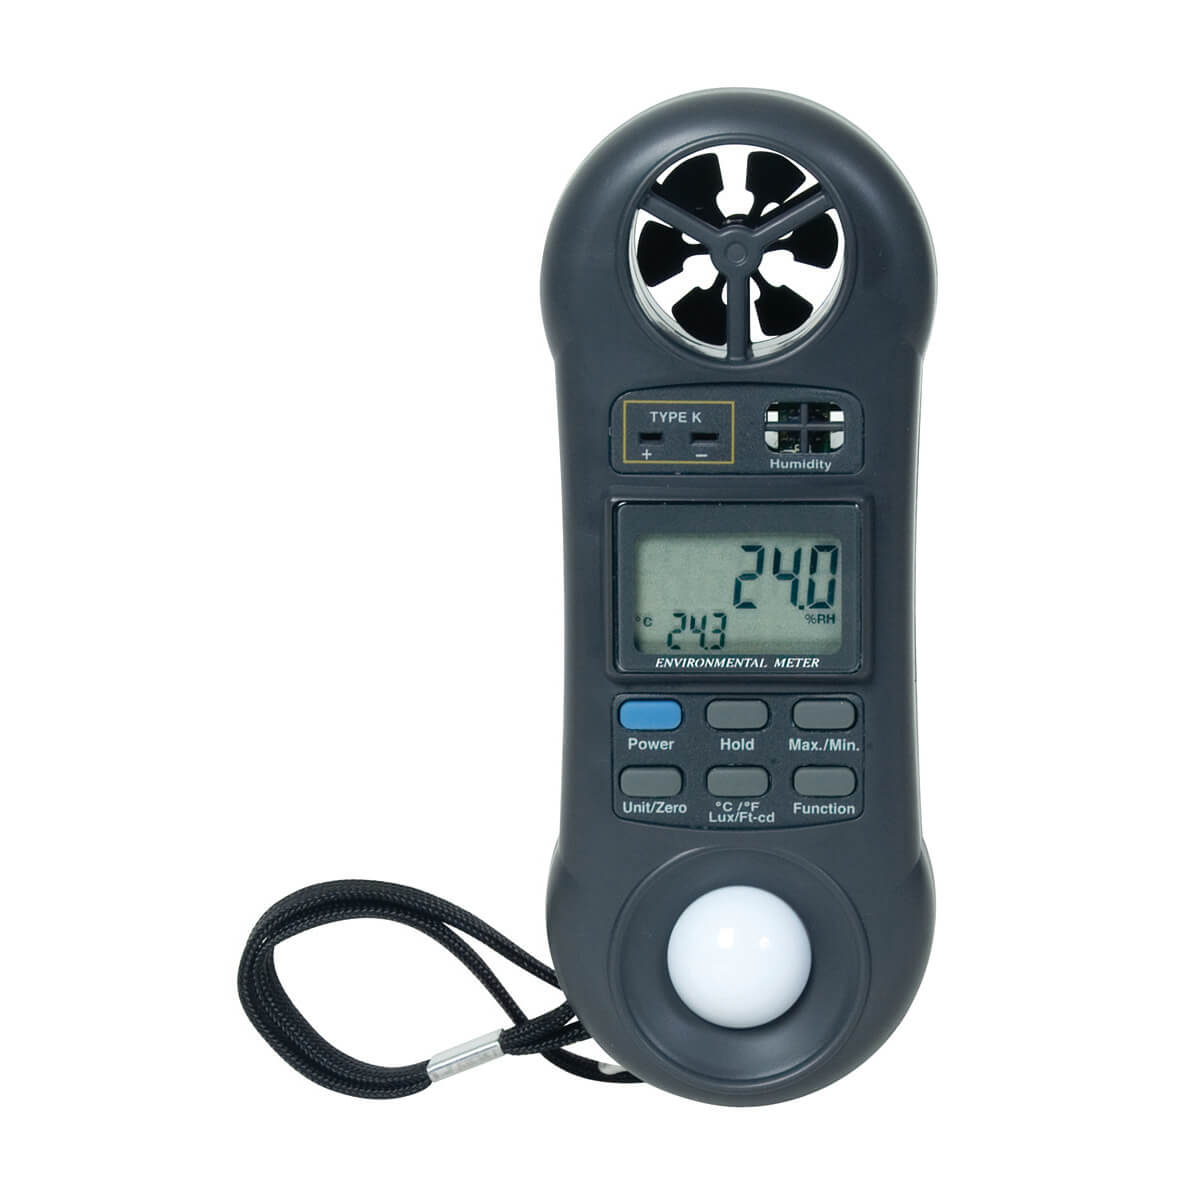 General Tools DLAF8000C 4-in-1 Digital Environmental Meter